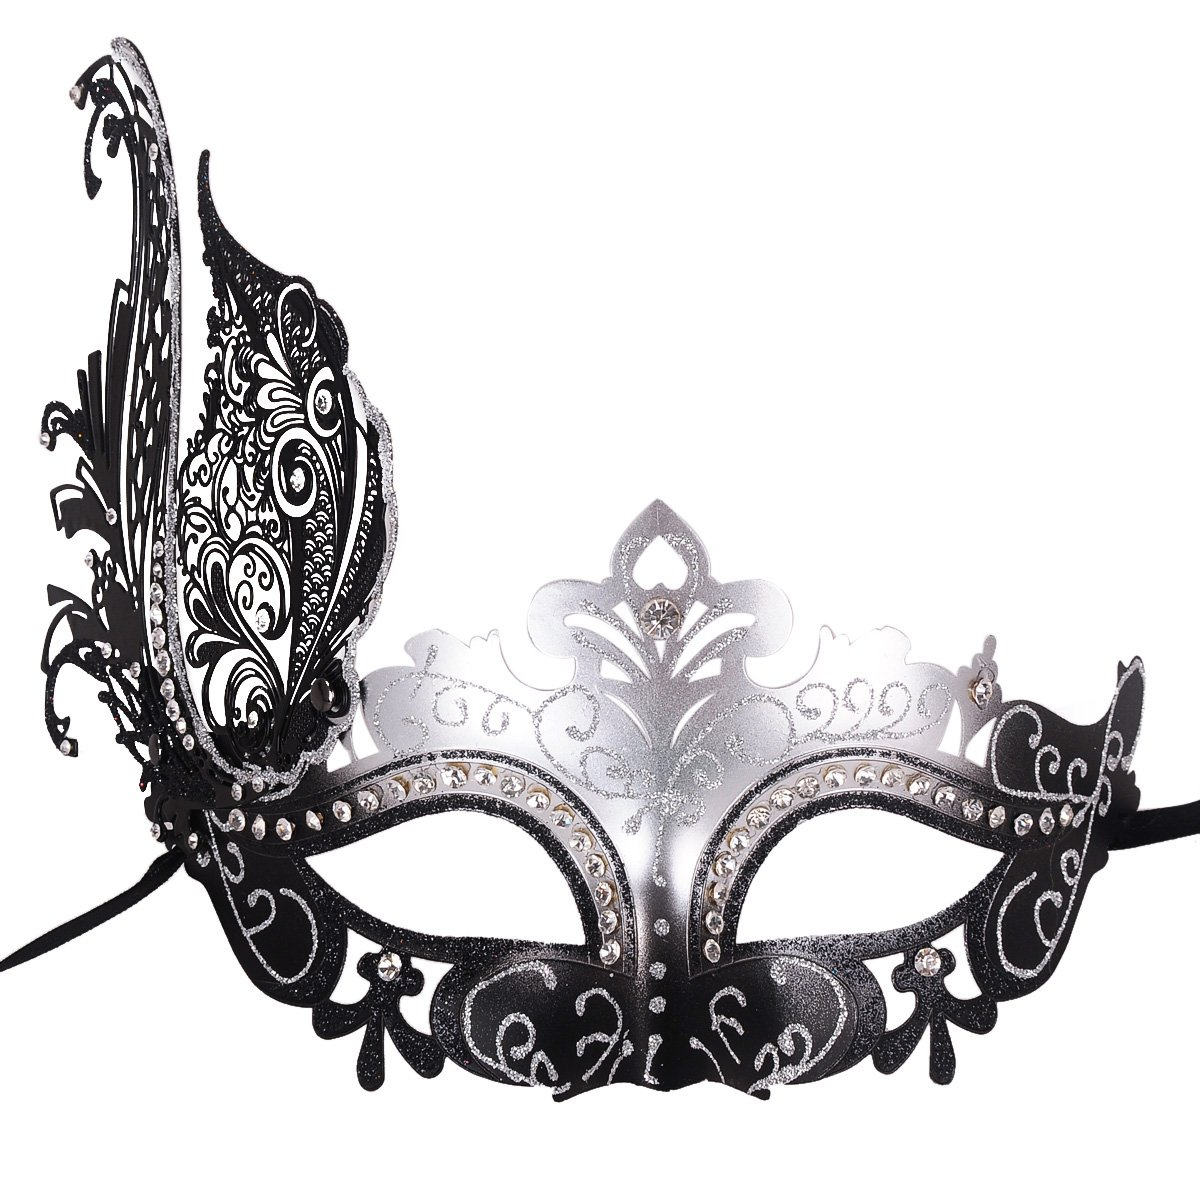 Coxeer Venetian Mask Halloween Mask Party Mask Vintage Masquerade Mask for Prom 2